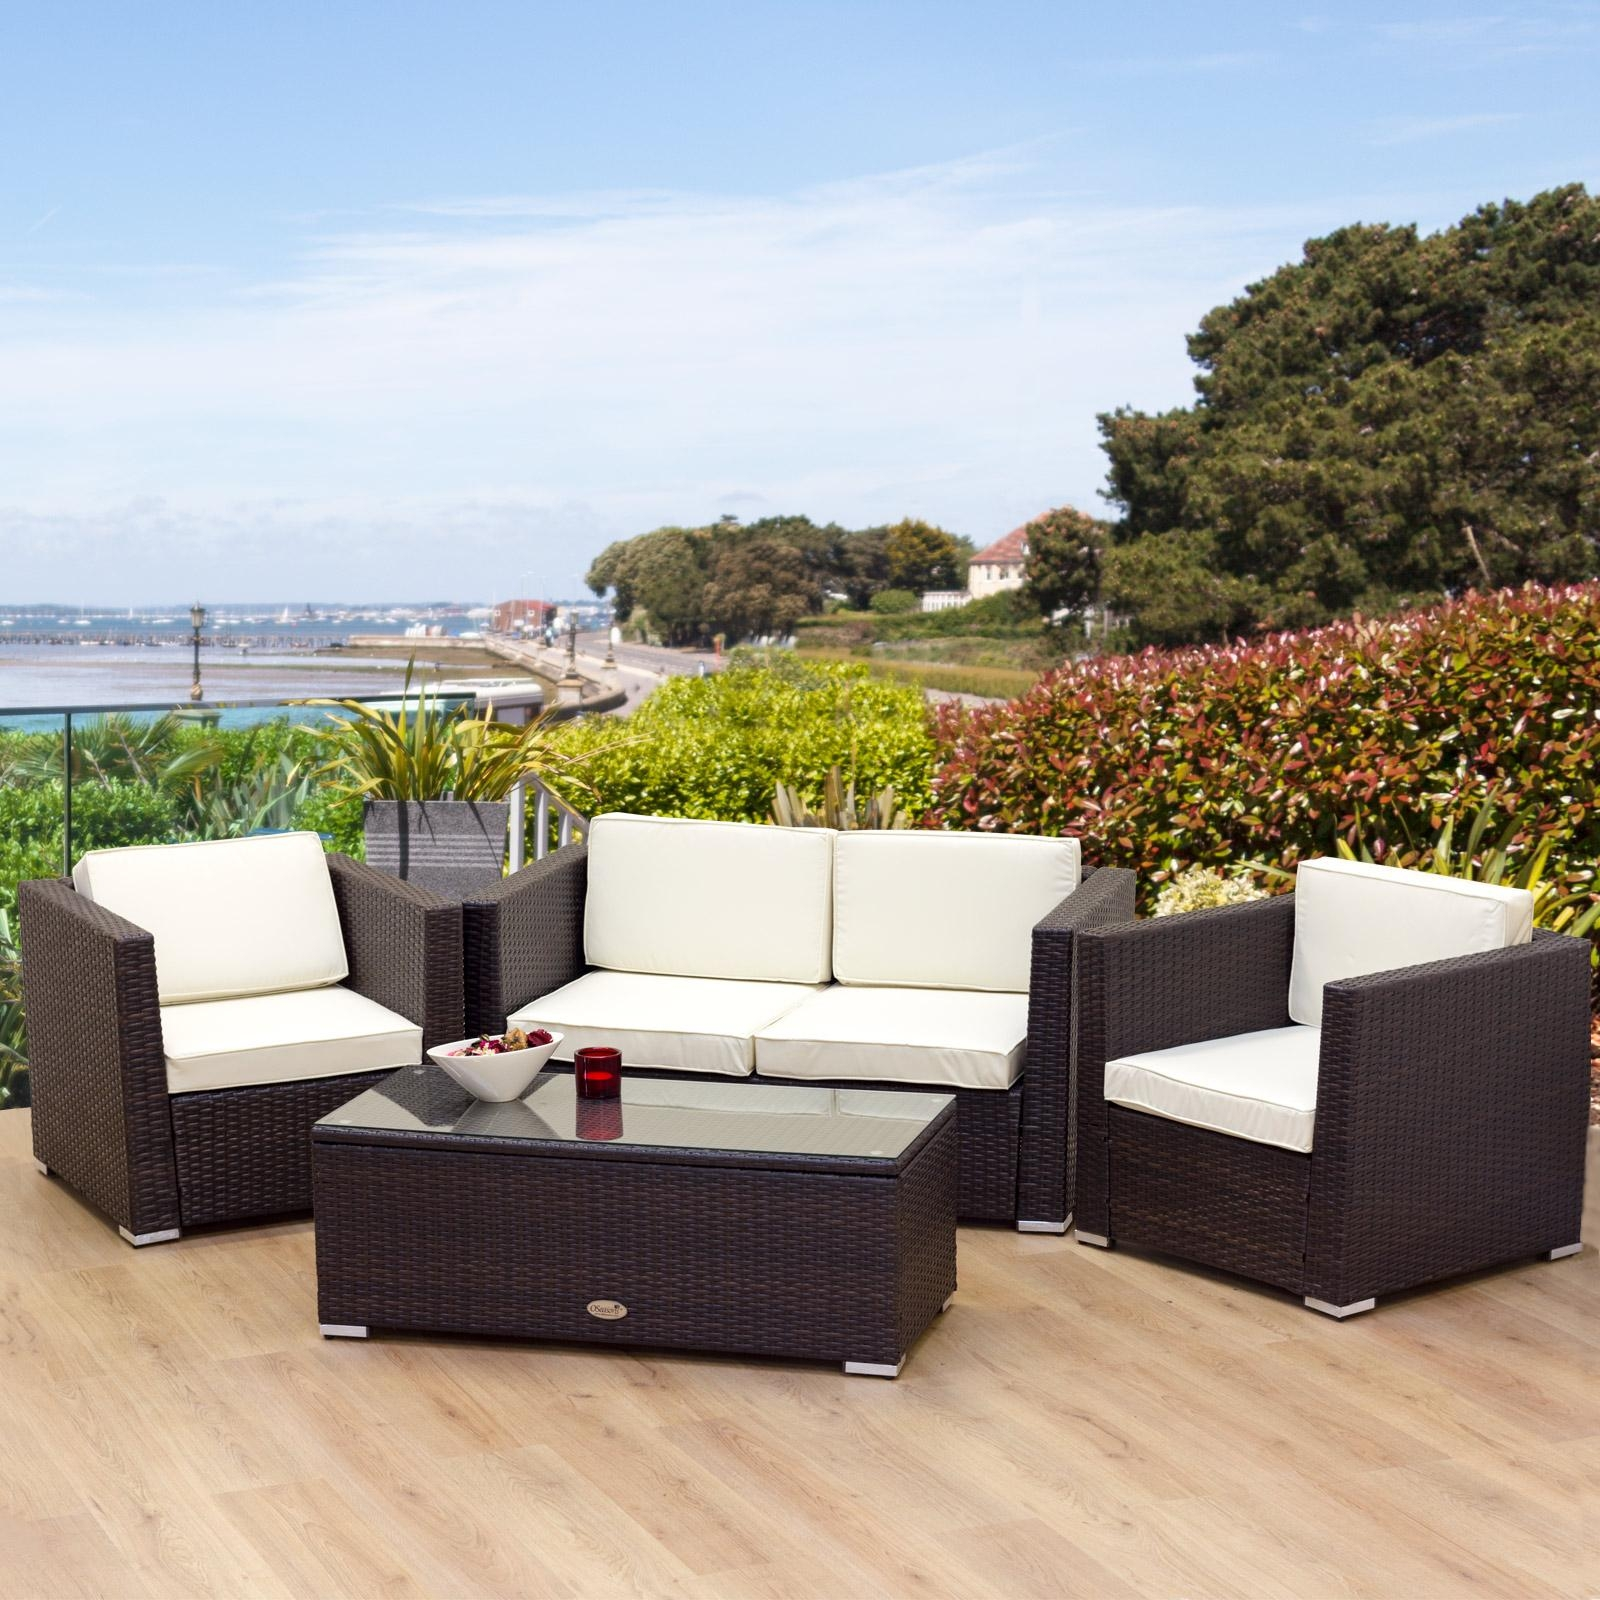 Awesome Rattan Garden Furniture – Hgnv Inside Modern Rattan Sofas (Image 2 of 23)